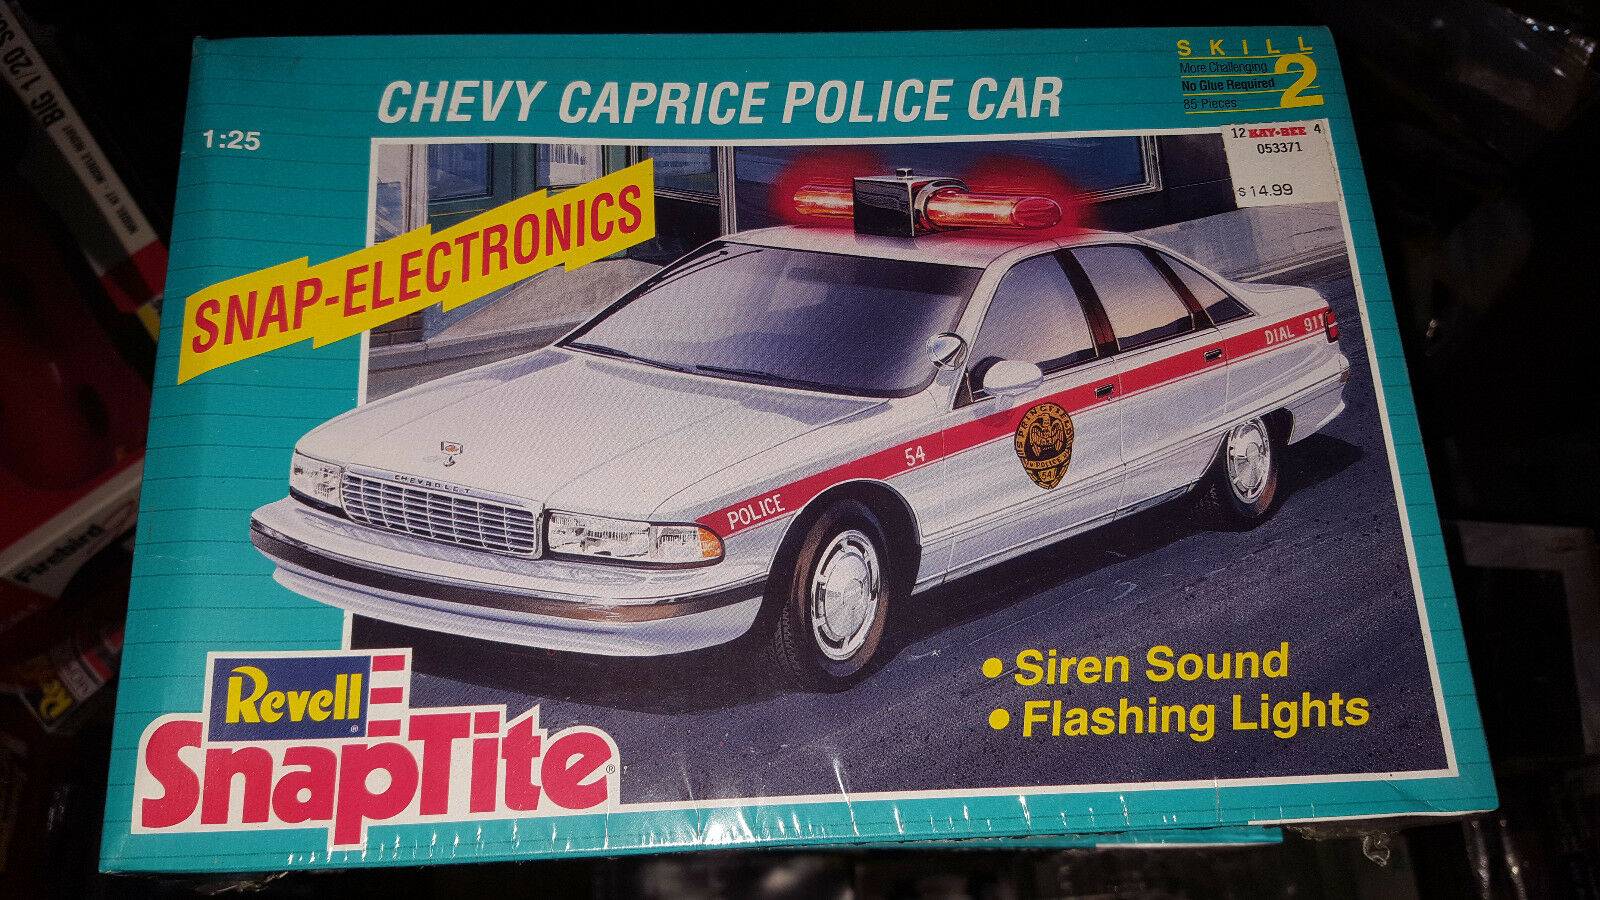 1 25 Chevy Caprice Police Car siren sound flashing lights Revell sealed